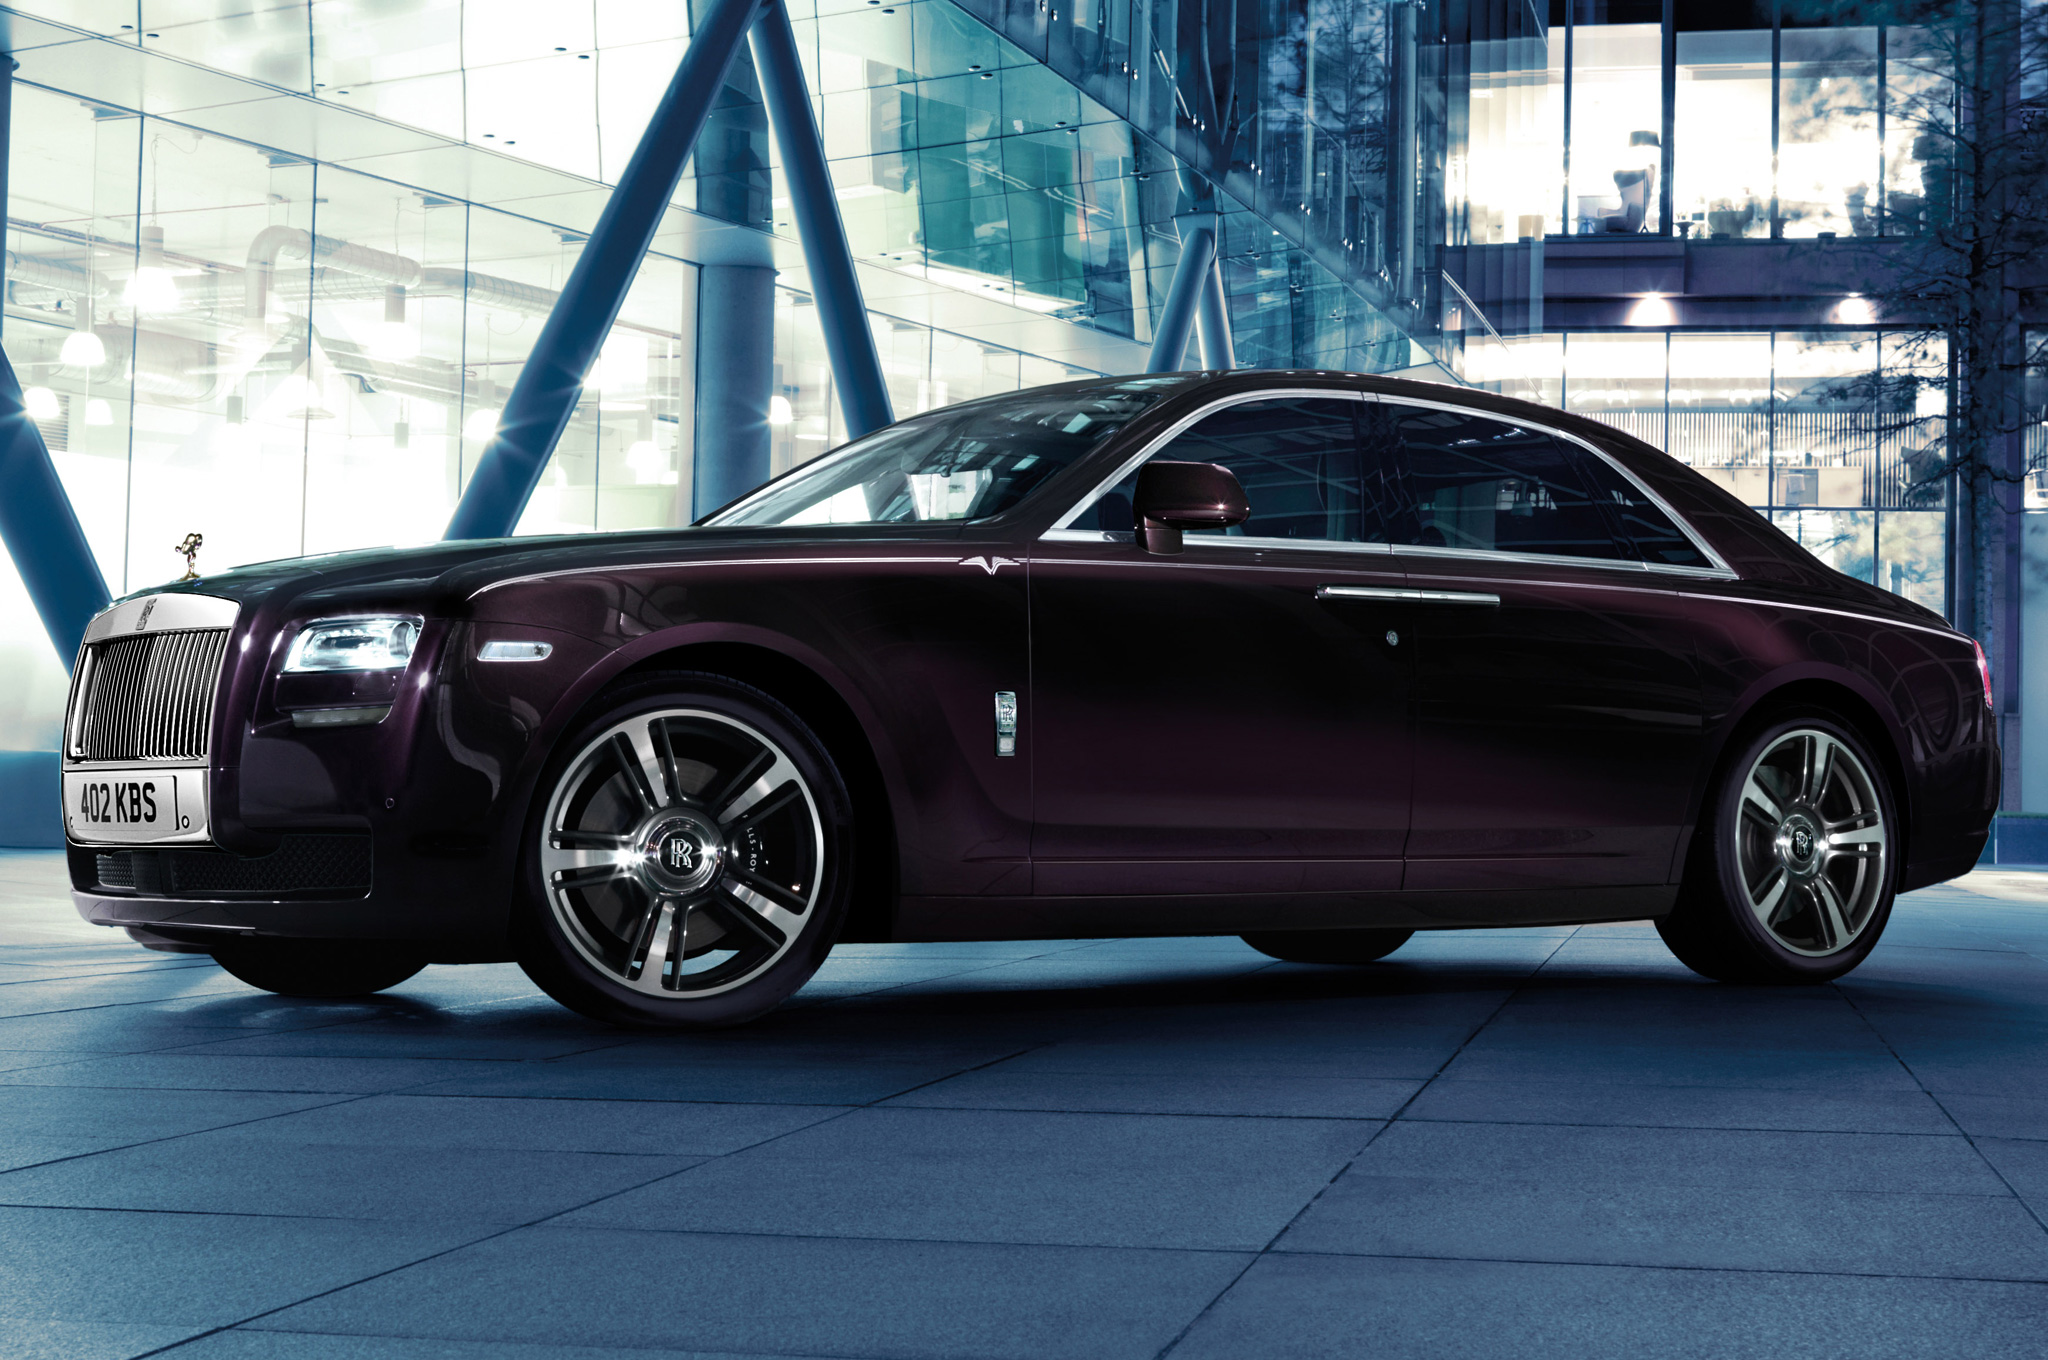 2014 Rolls royce Ghost #12